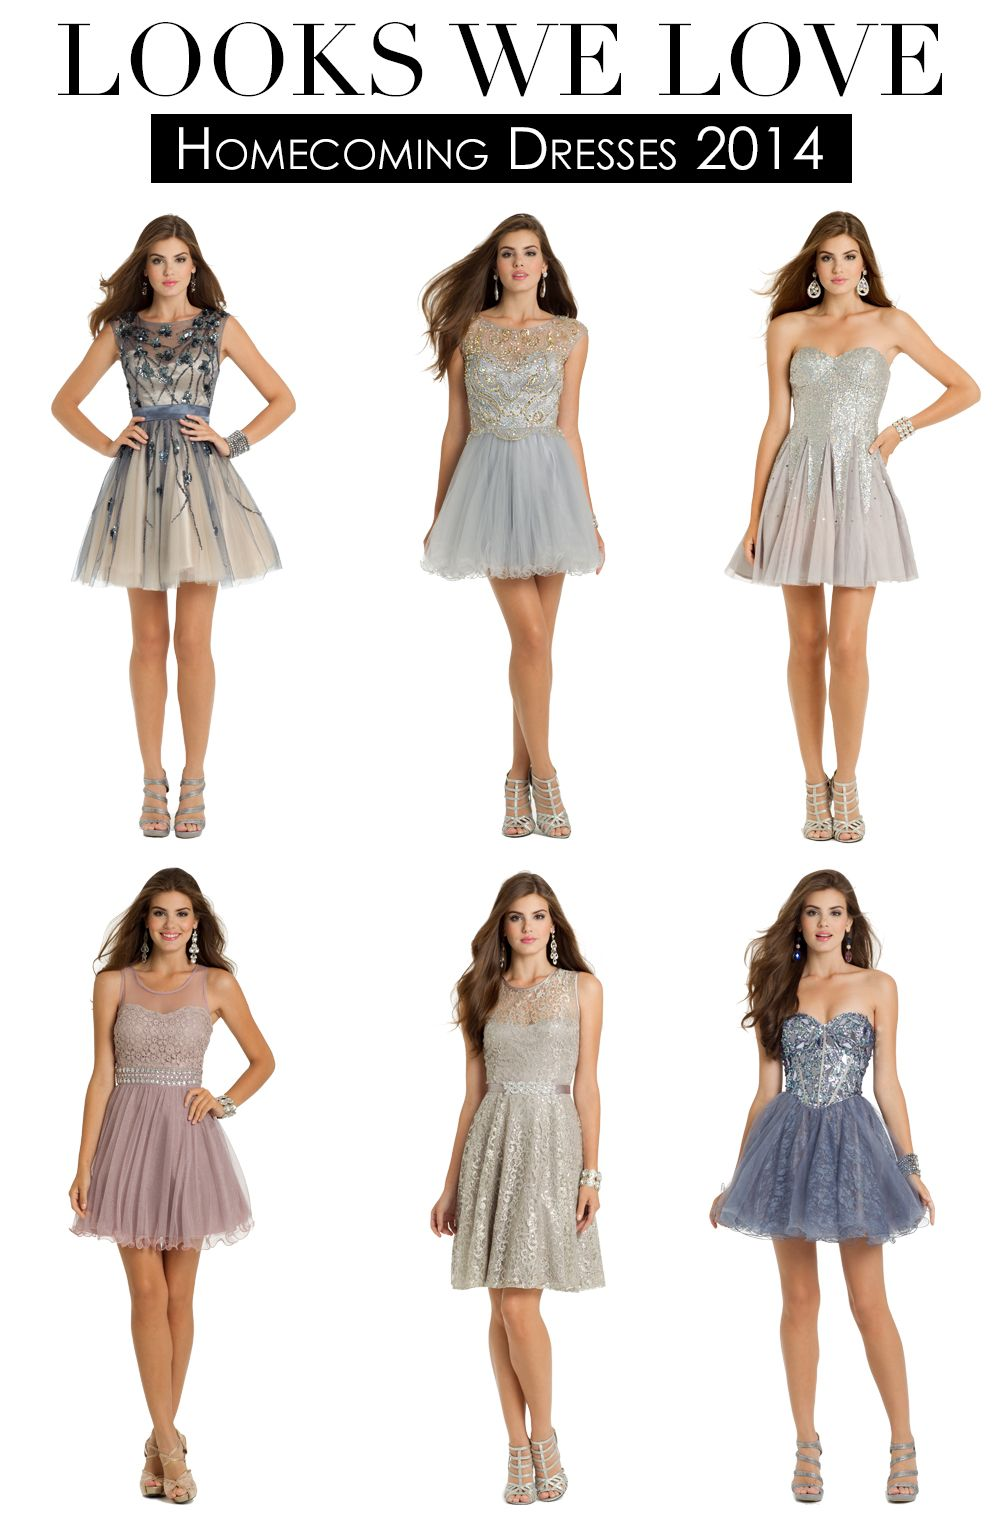 Camille La Vie Homecoming Short Dresses for any hot party